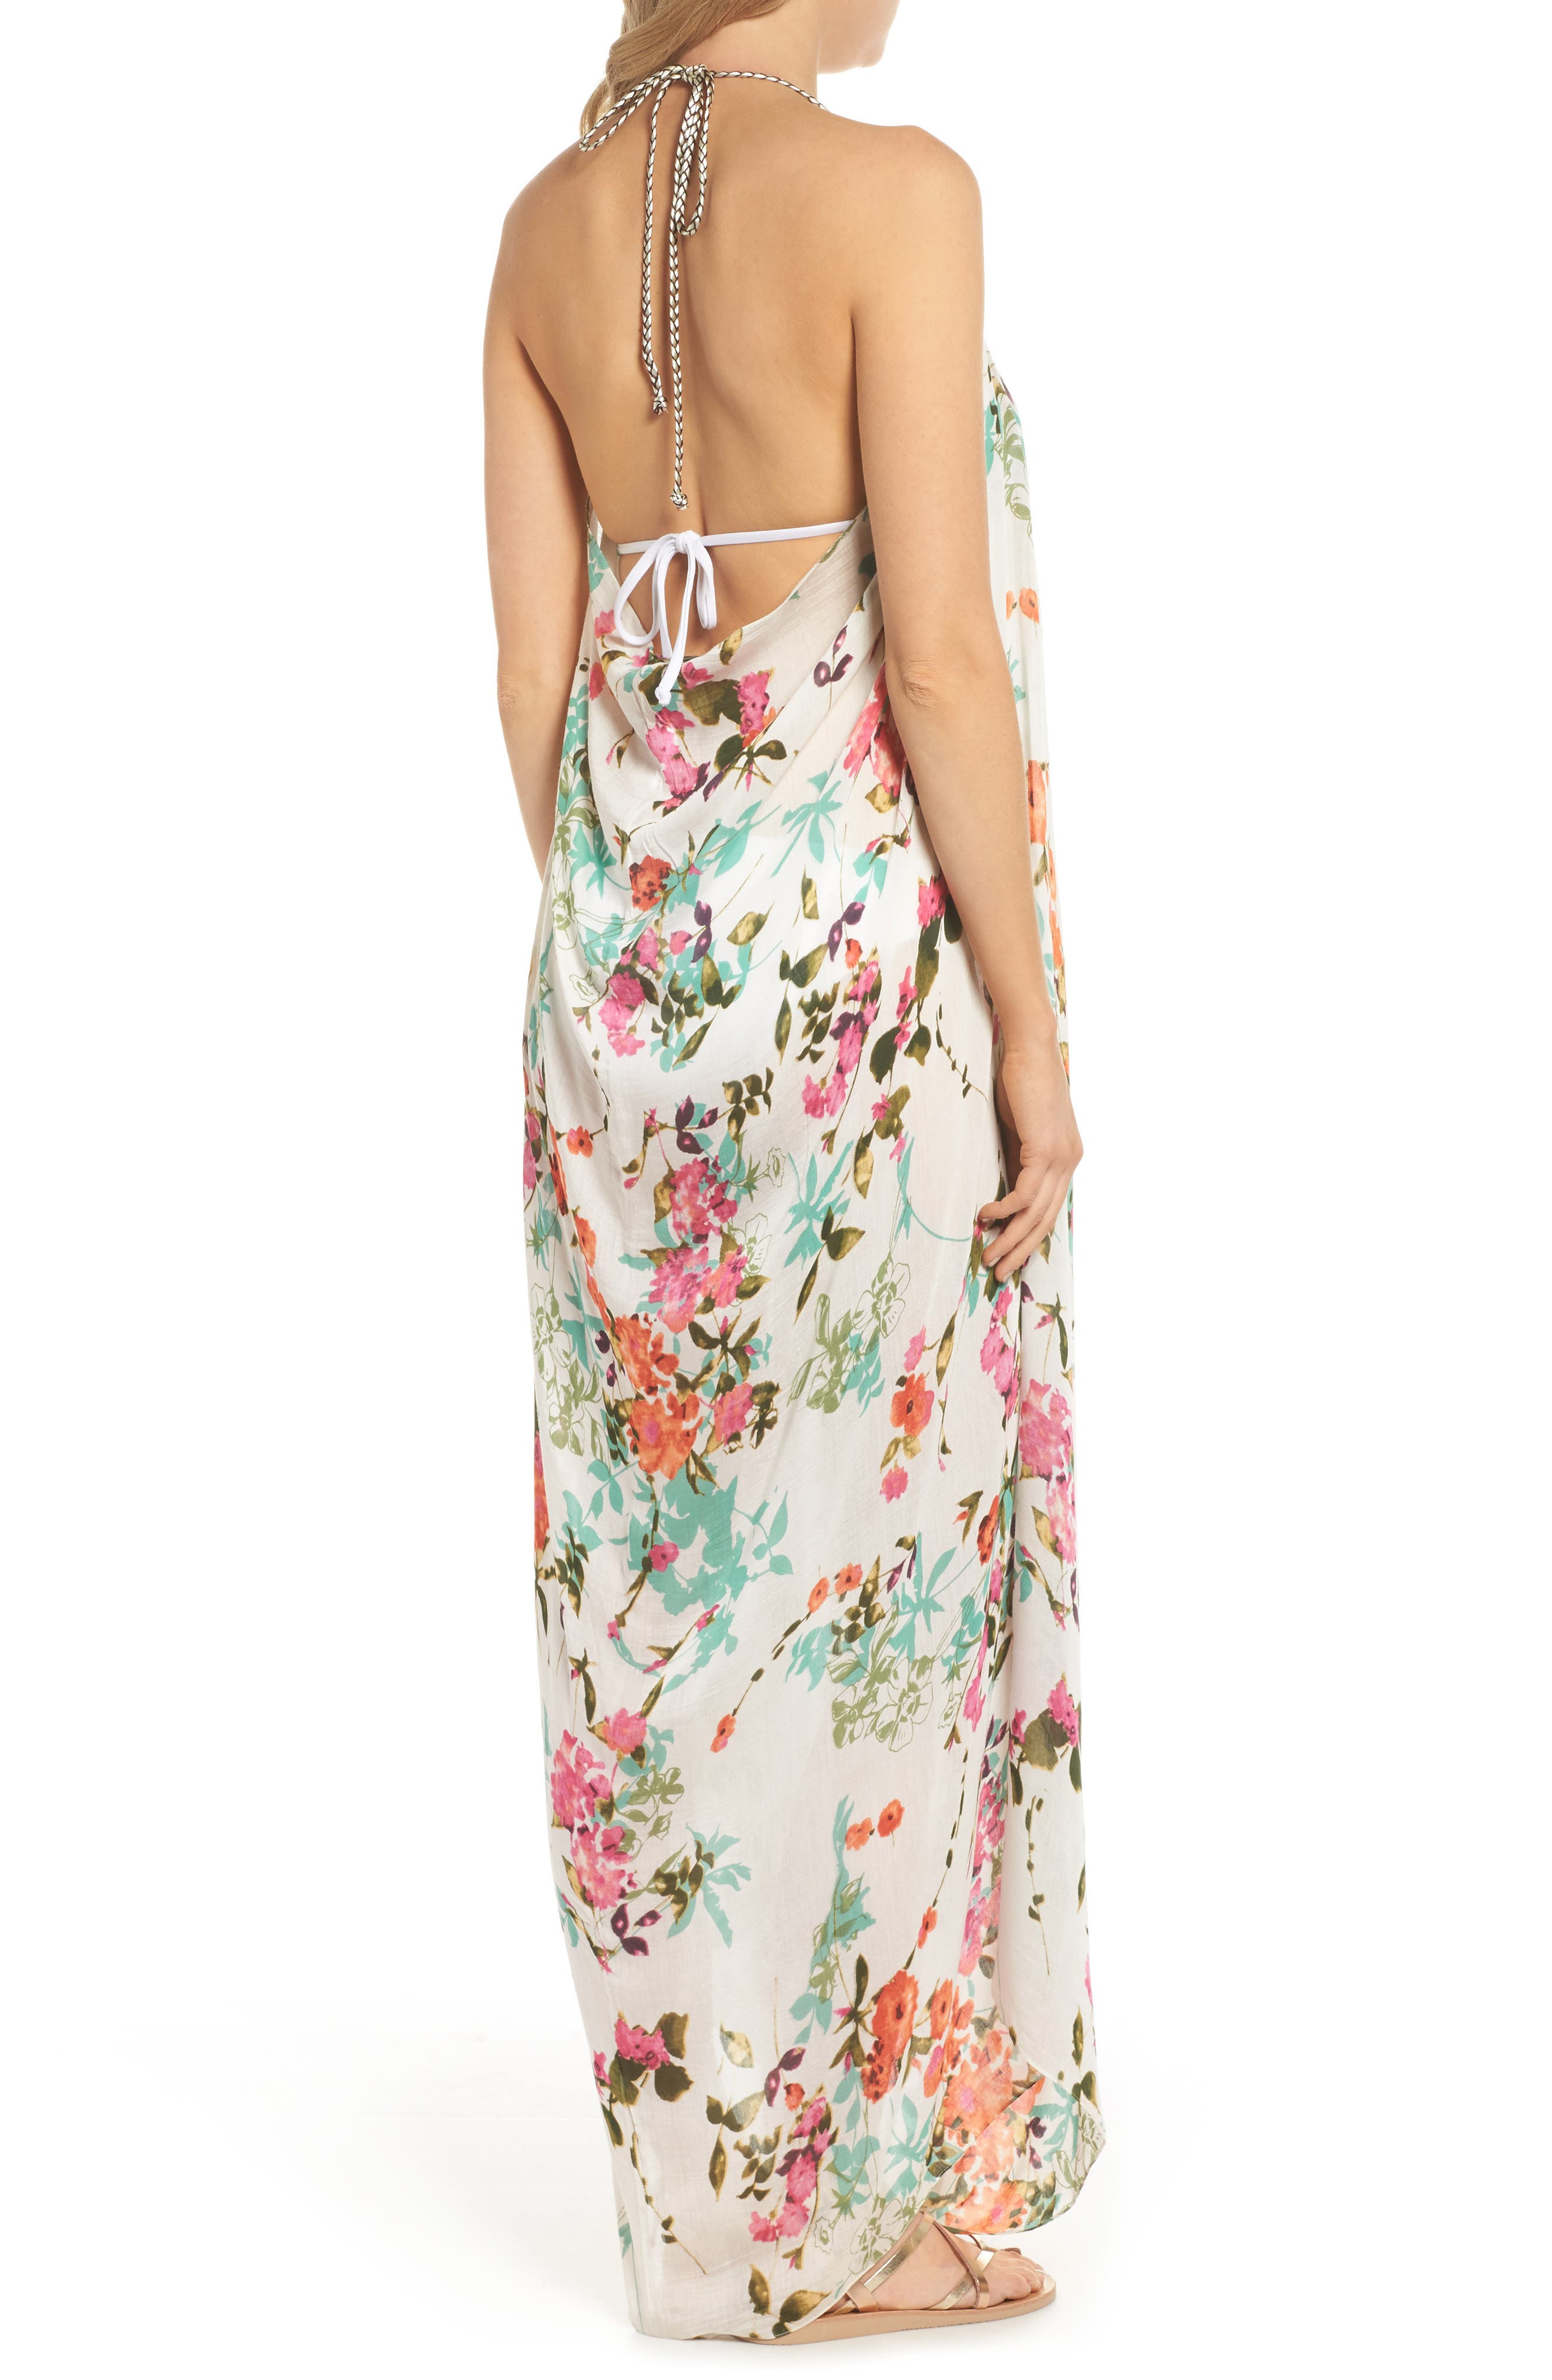 Beach to Street Cover-Up Dress,                             Alternate thumbnail 2, color,                             White